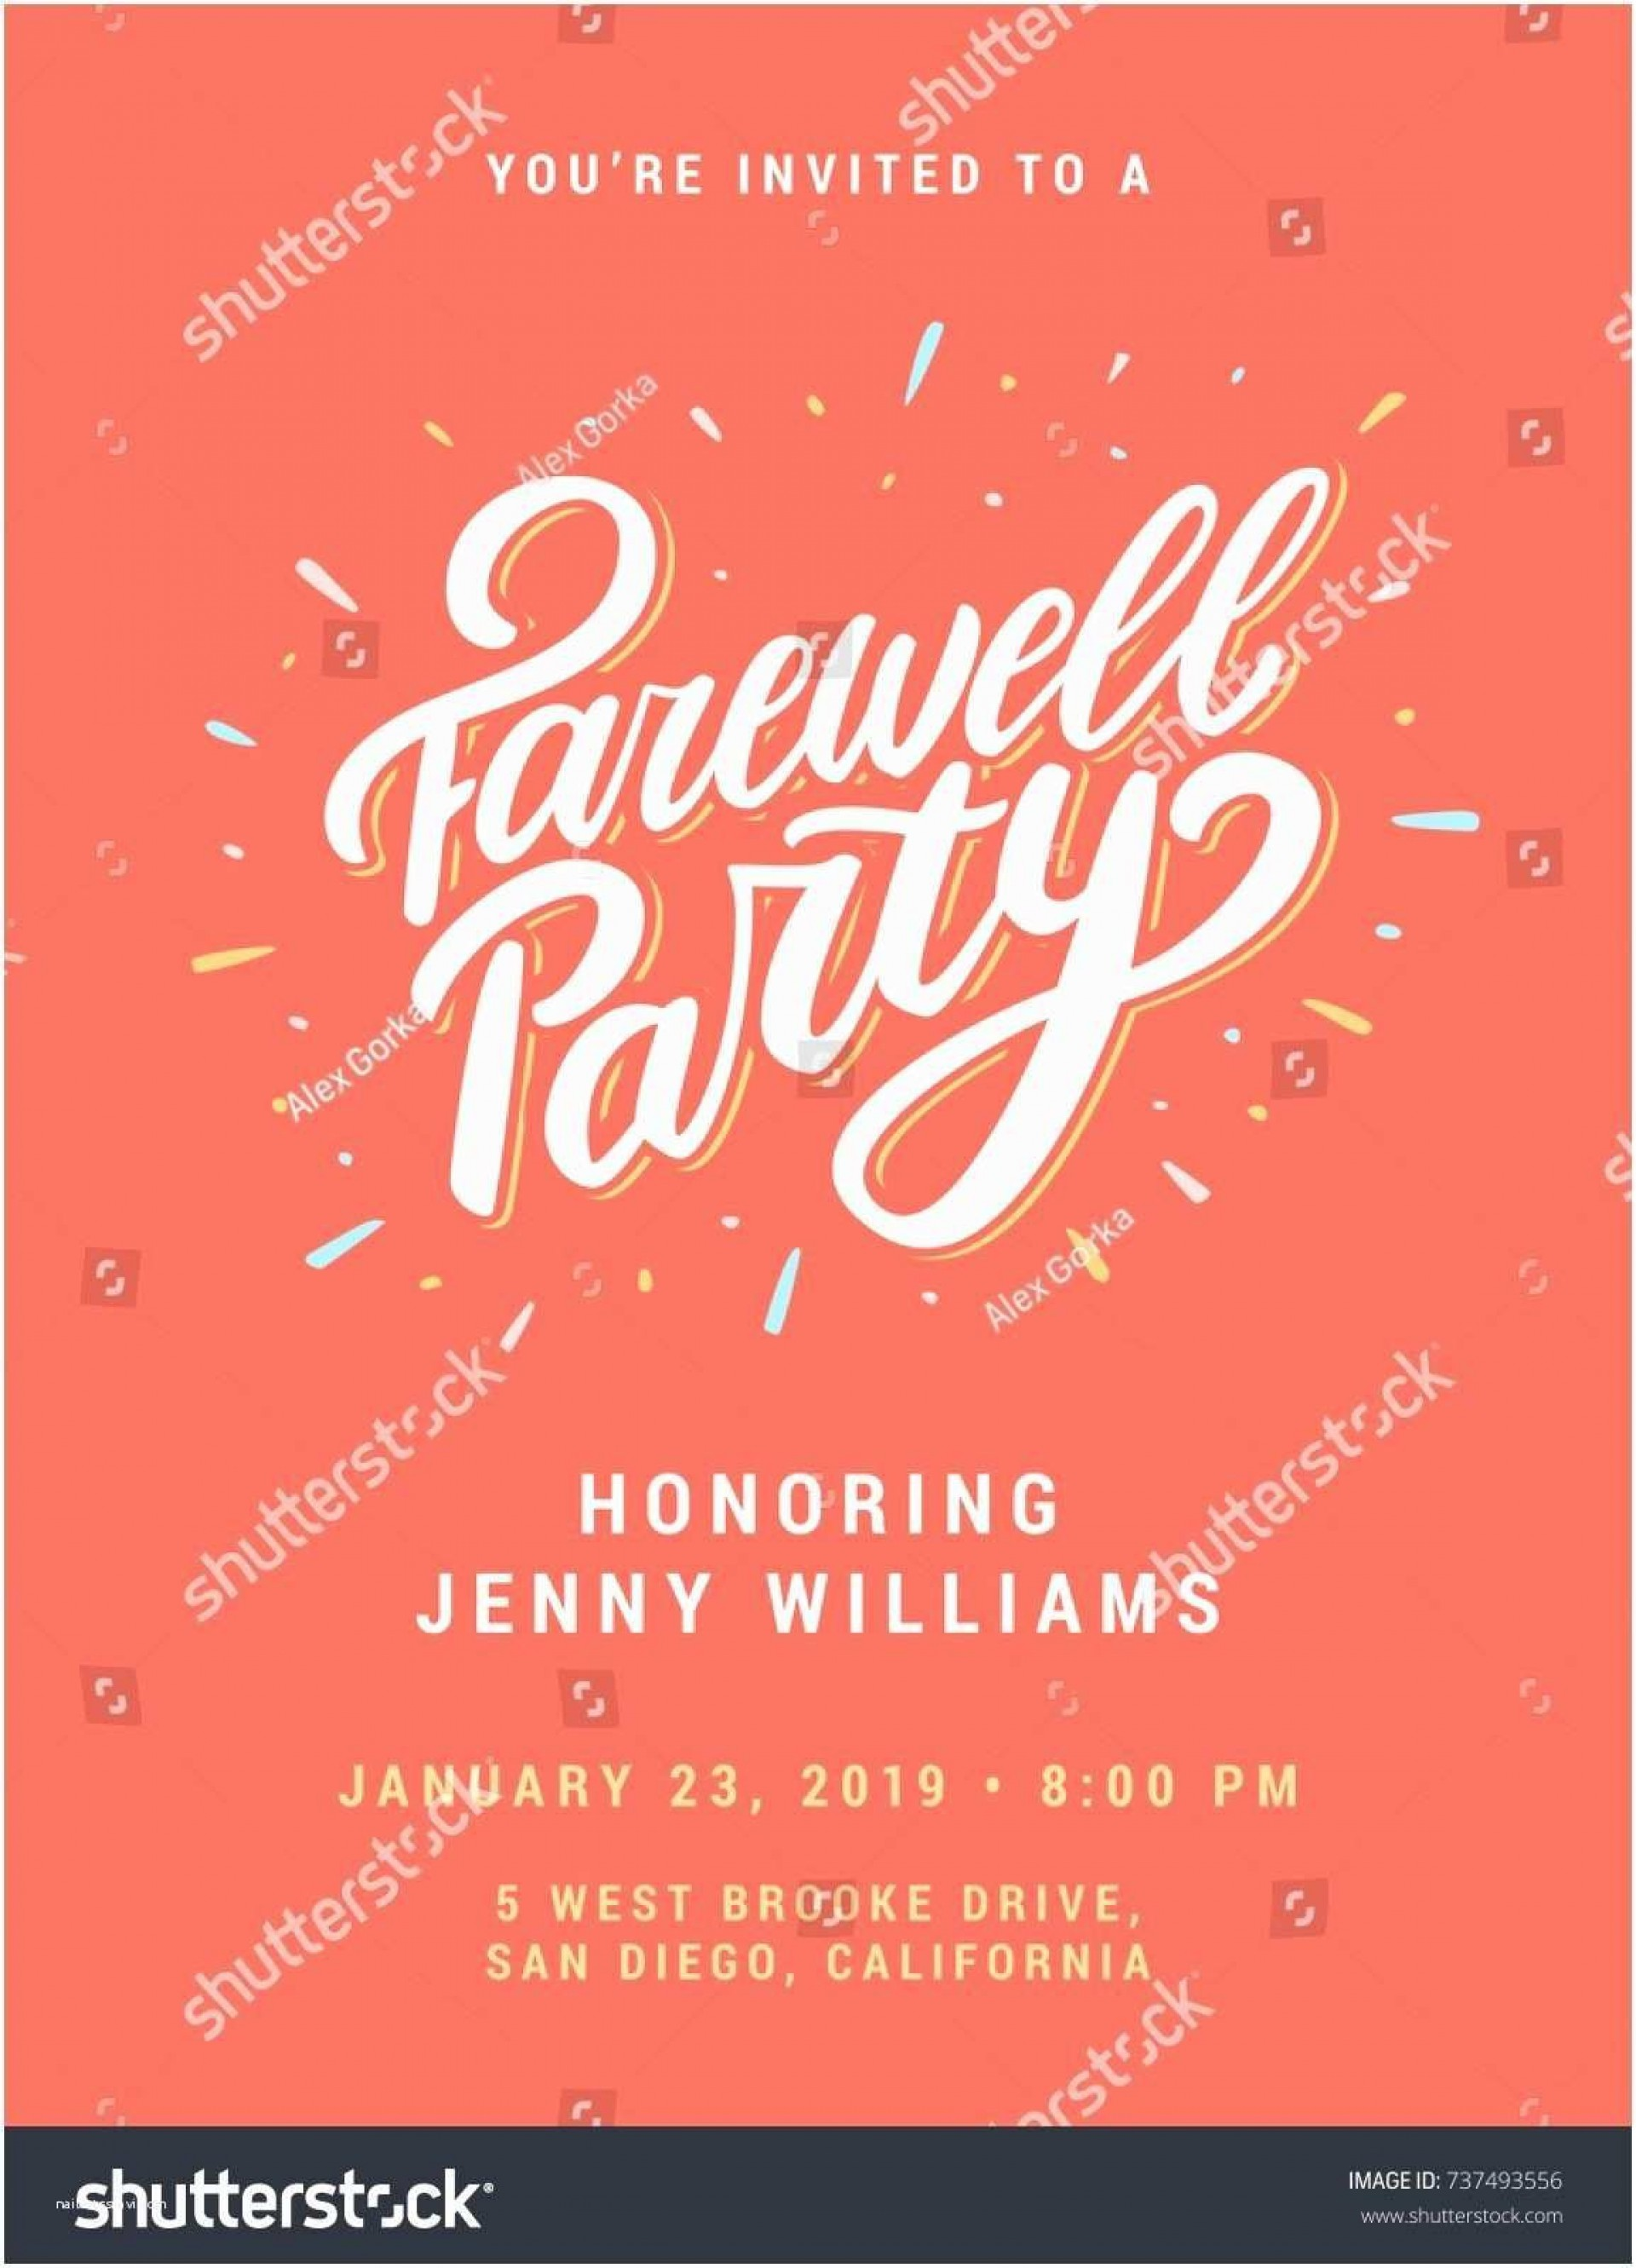 007 Beautiful Farewell Party Invitation Template Free Sample  Email Printable Word1920